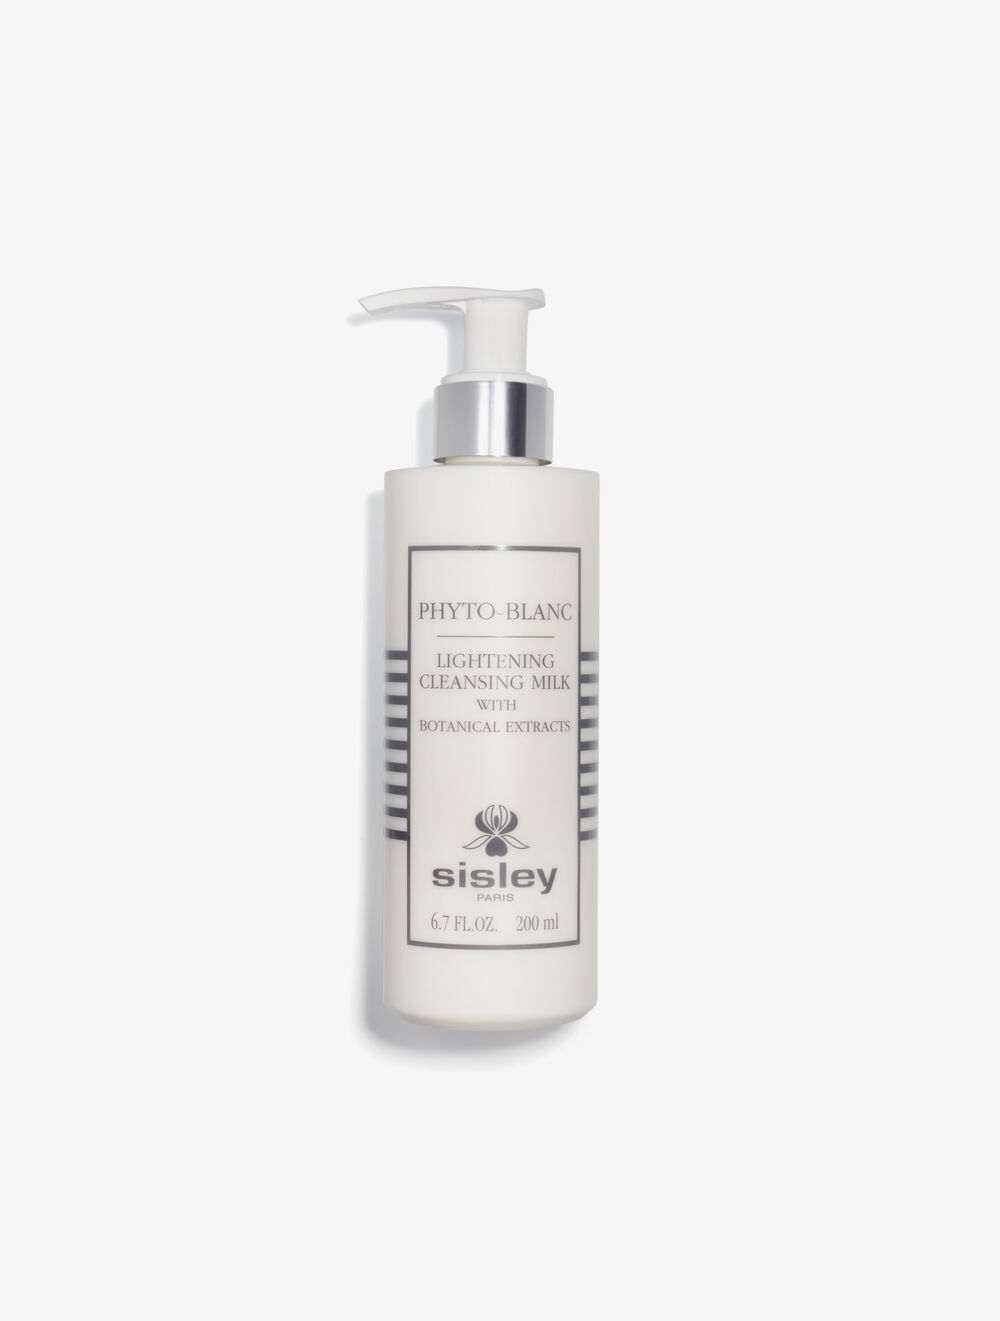 Phyto-Blanc Lightening Cleansing Milk